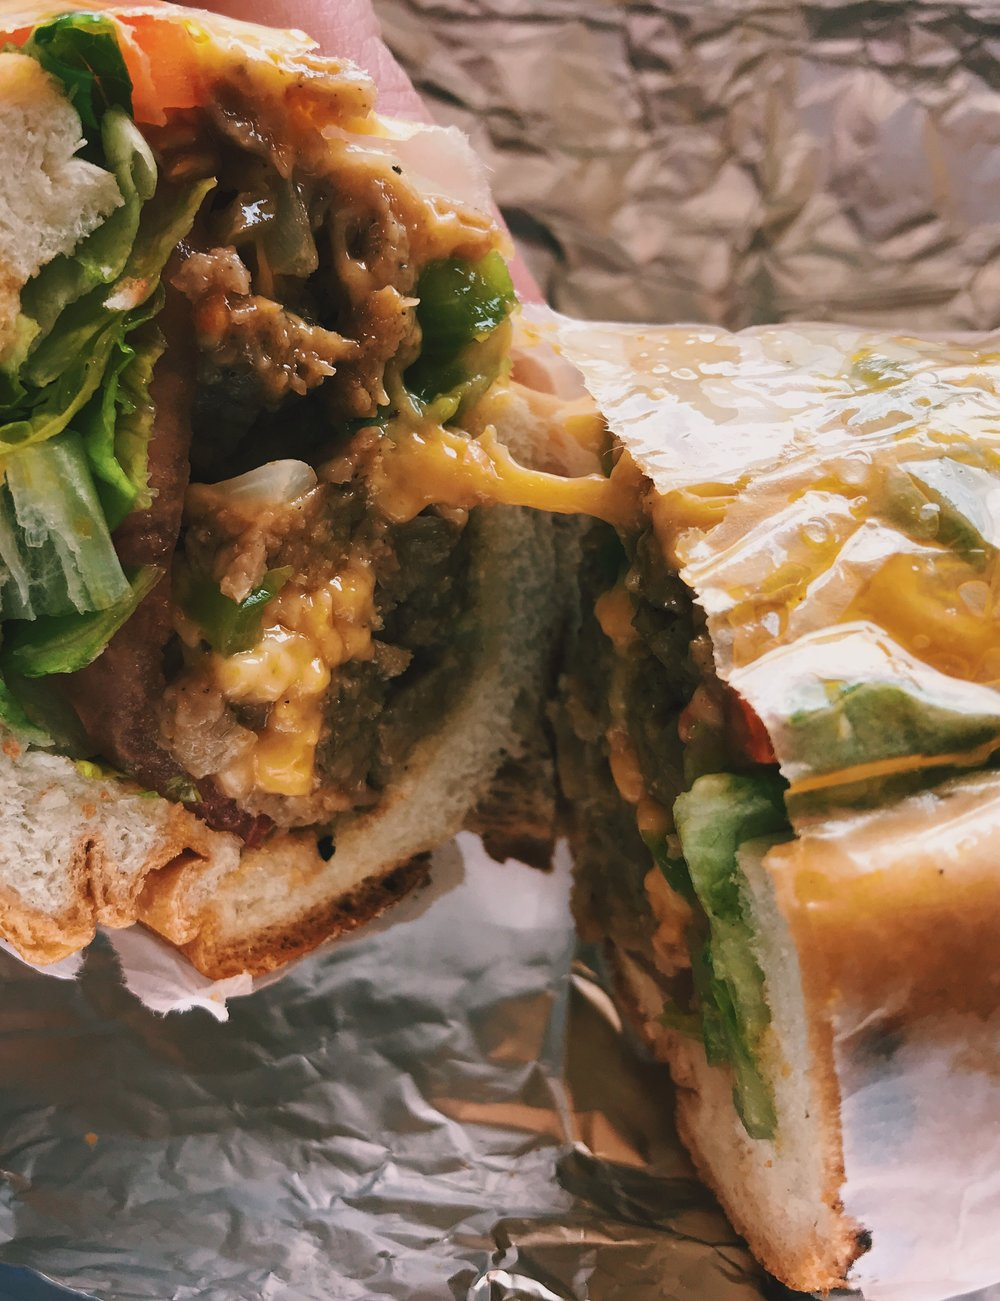 The Bronx Vegan eats: vegan chopped cheese -